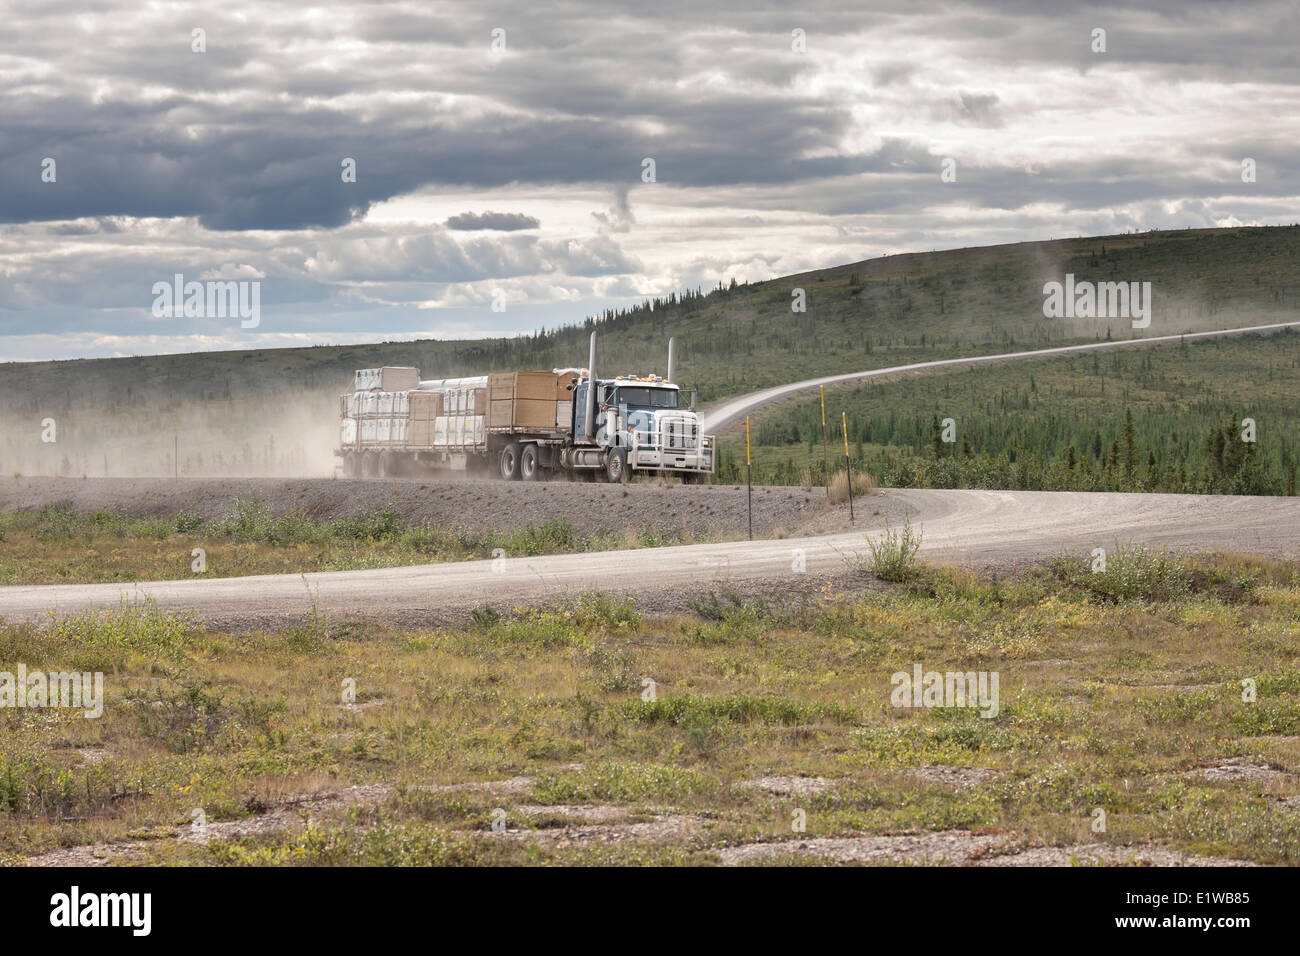 A transport truck driving on the dusty Dempster Highway in the Yukon Territory, Canada - Stock Image